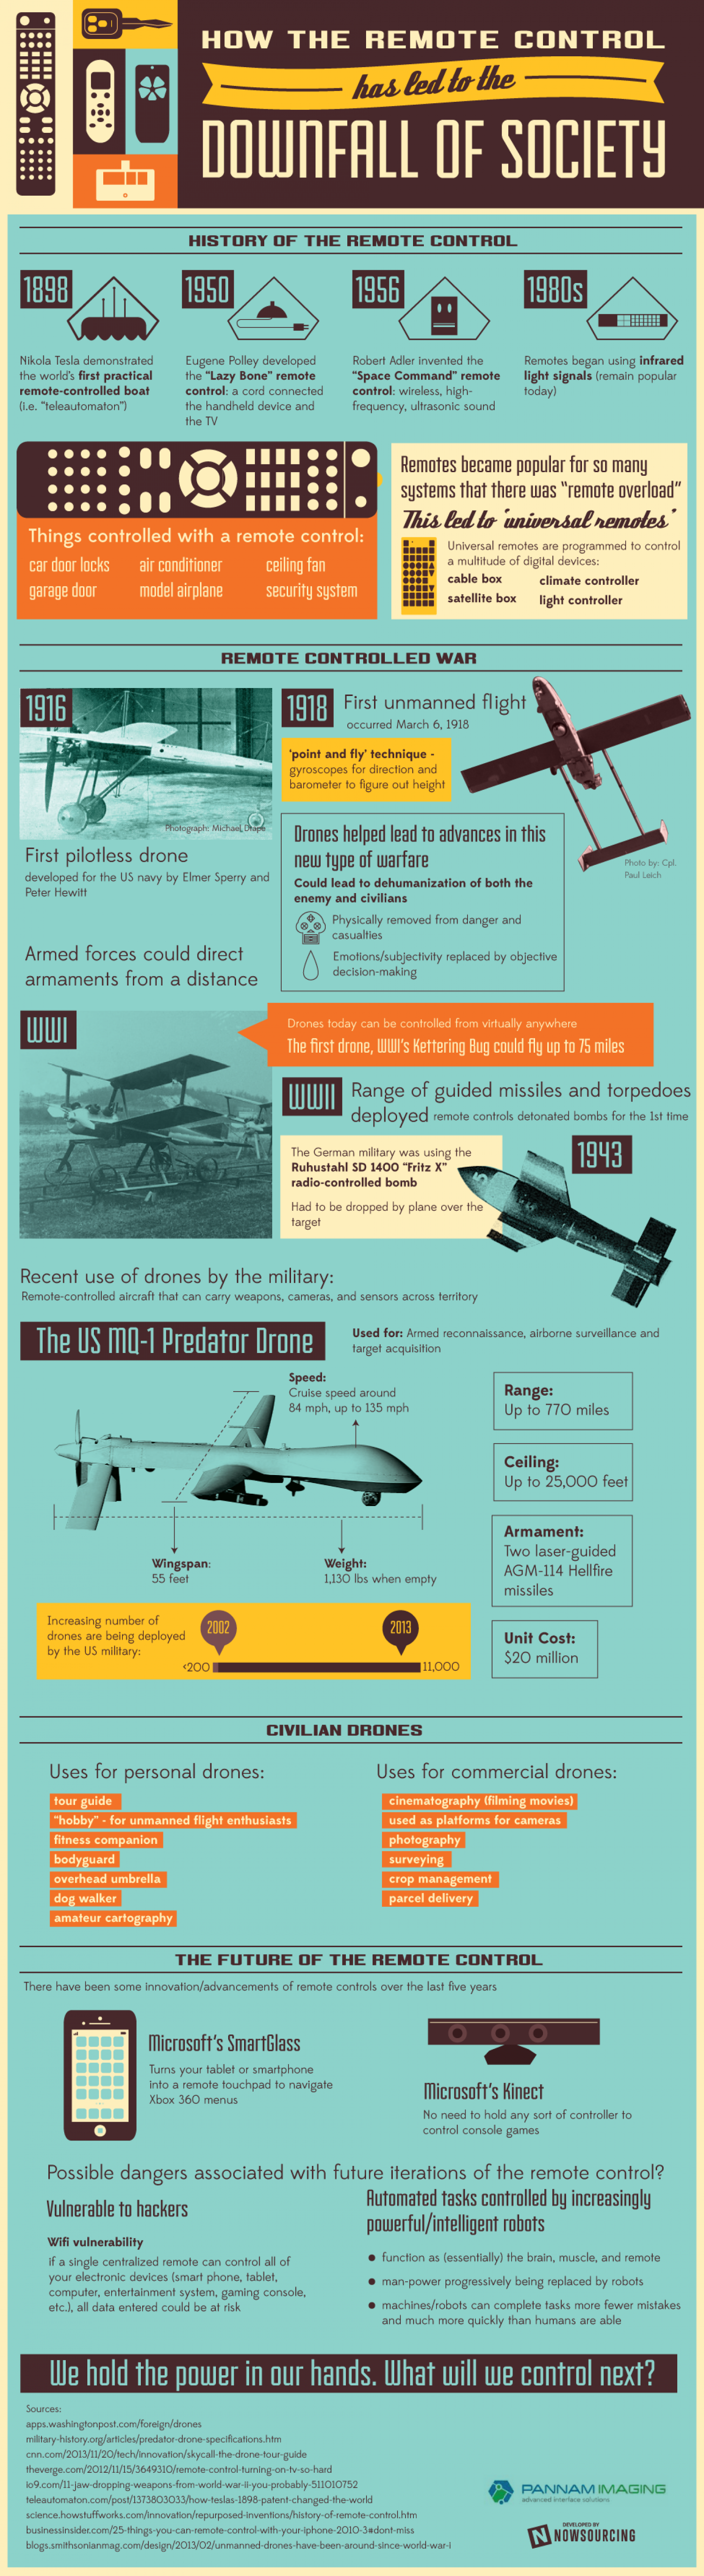 How the Remote Control has Led to the Downfall of Society Infographic